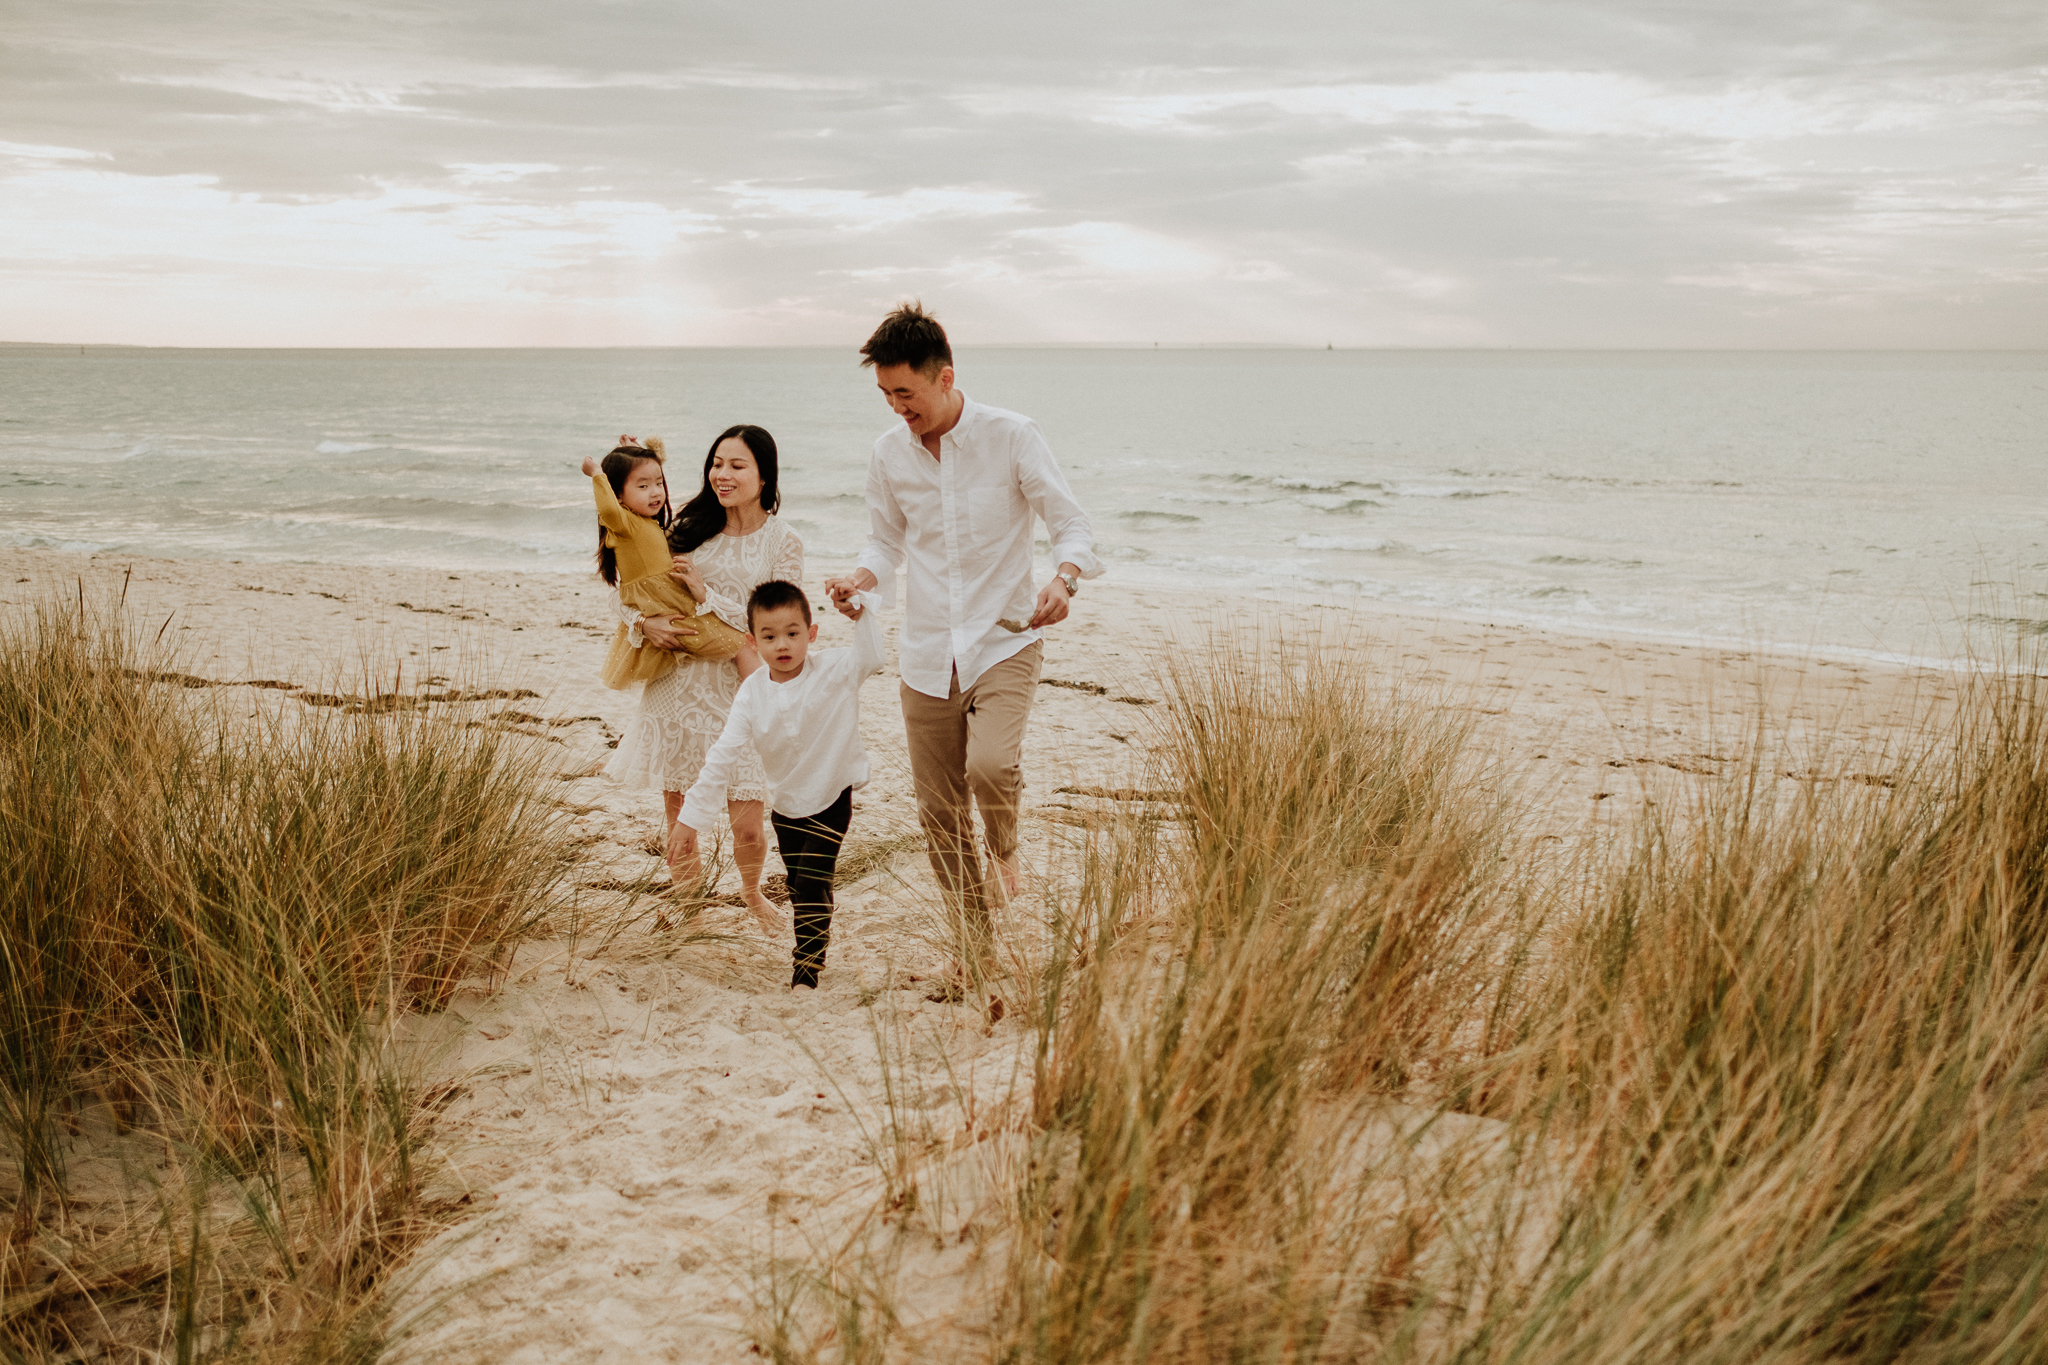 Morntington Peninsula Family Portraits (13 of 39).jpg